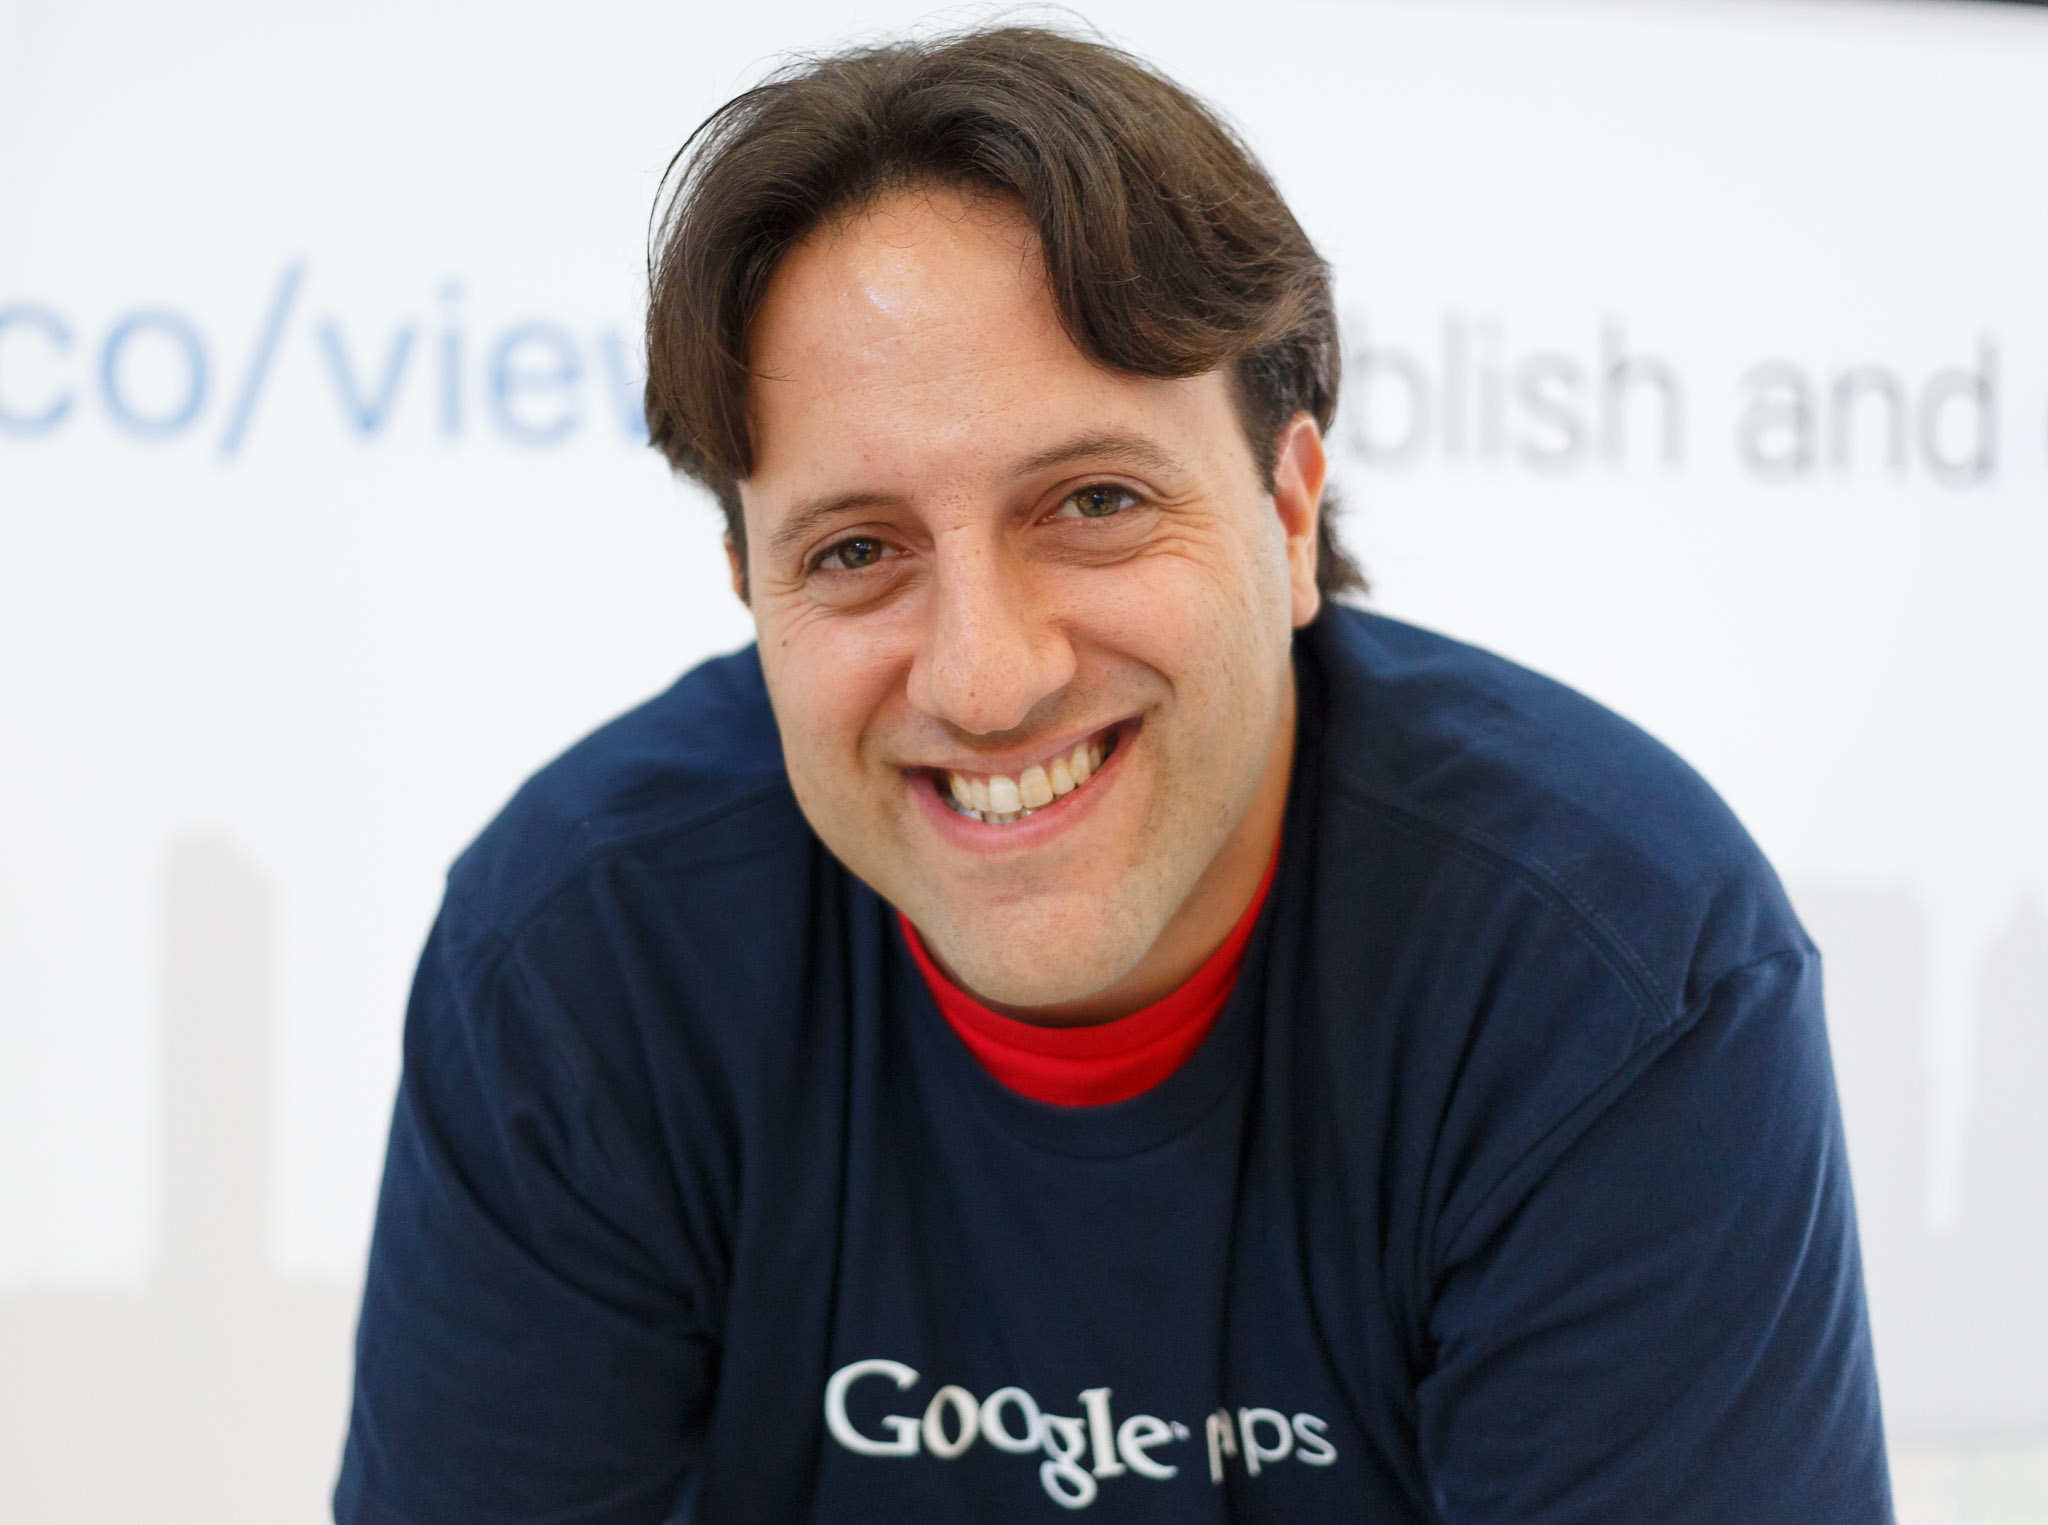 Evan Rapoport, Google's product manager in charge of its Views photo service, at Photokina 2014.